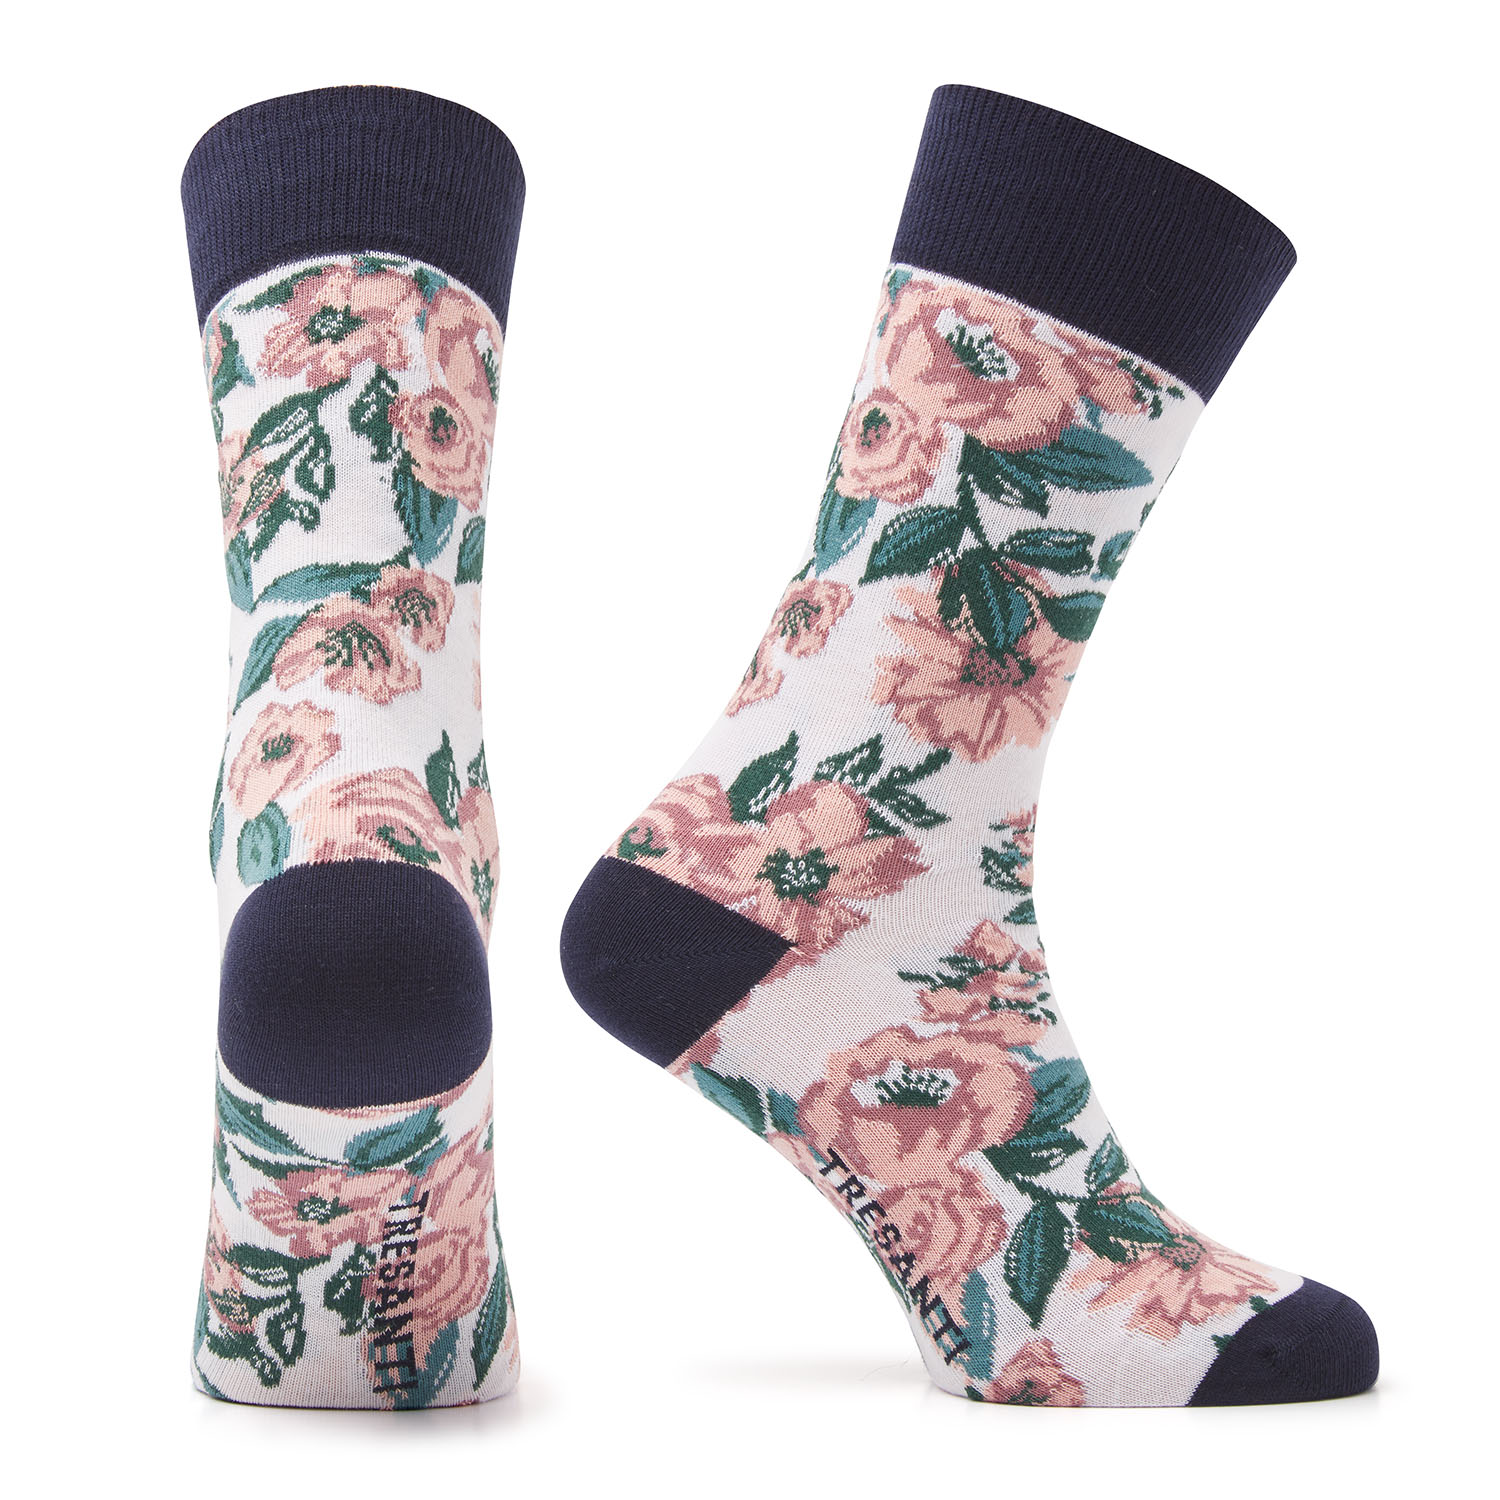 Misja | Cotton socks flowers pink